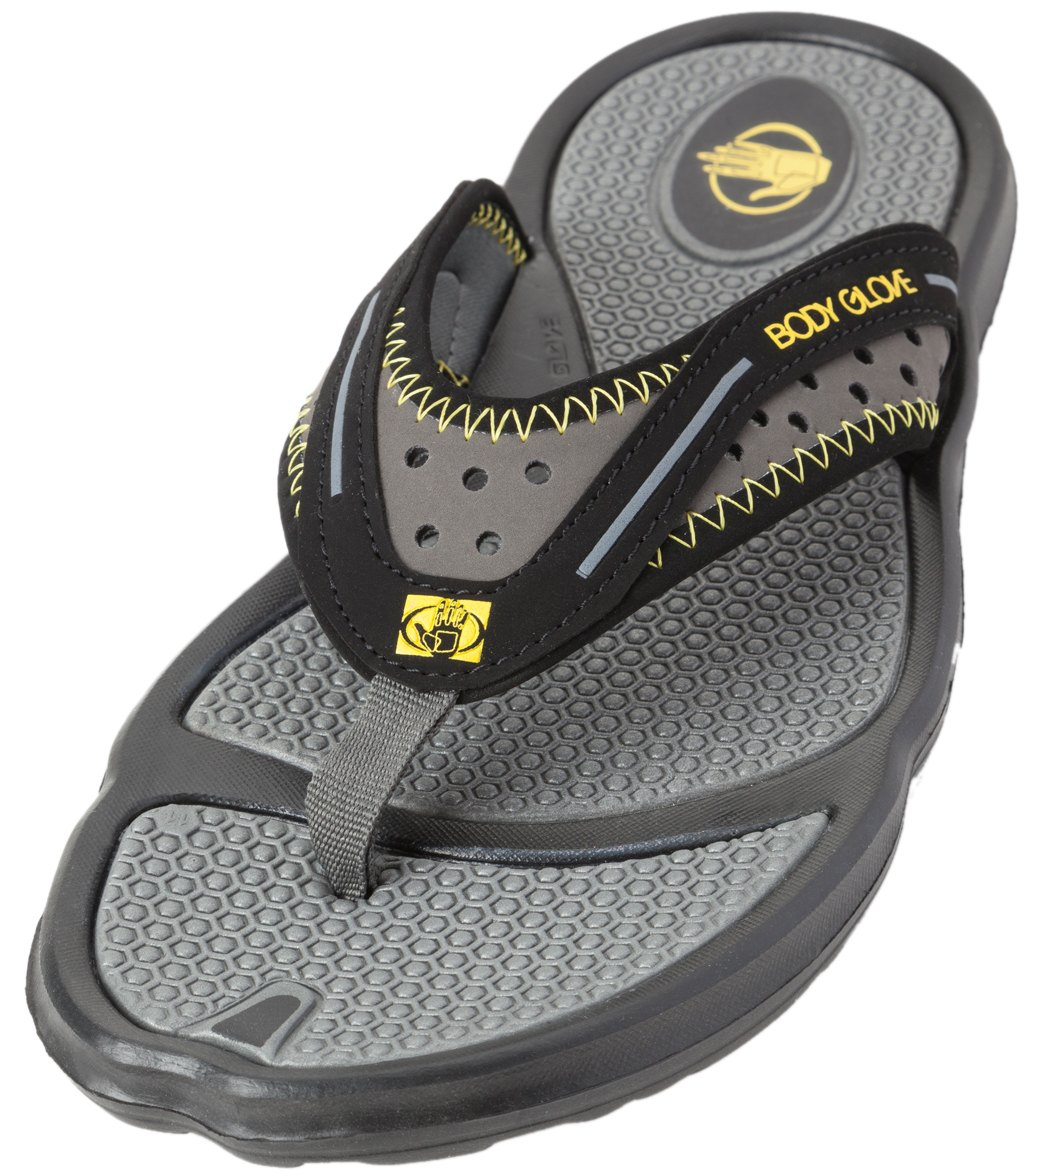 e5ab421abdc3 Body Glove Men s Kona Flip Flop at SwimOutlet.com